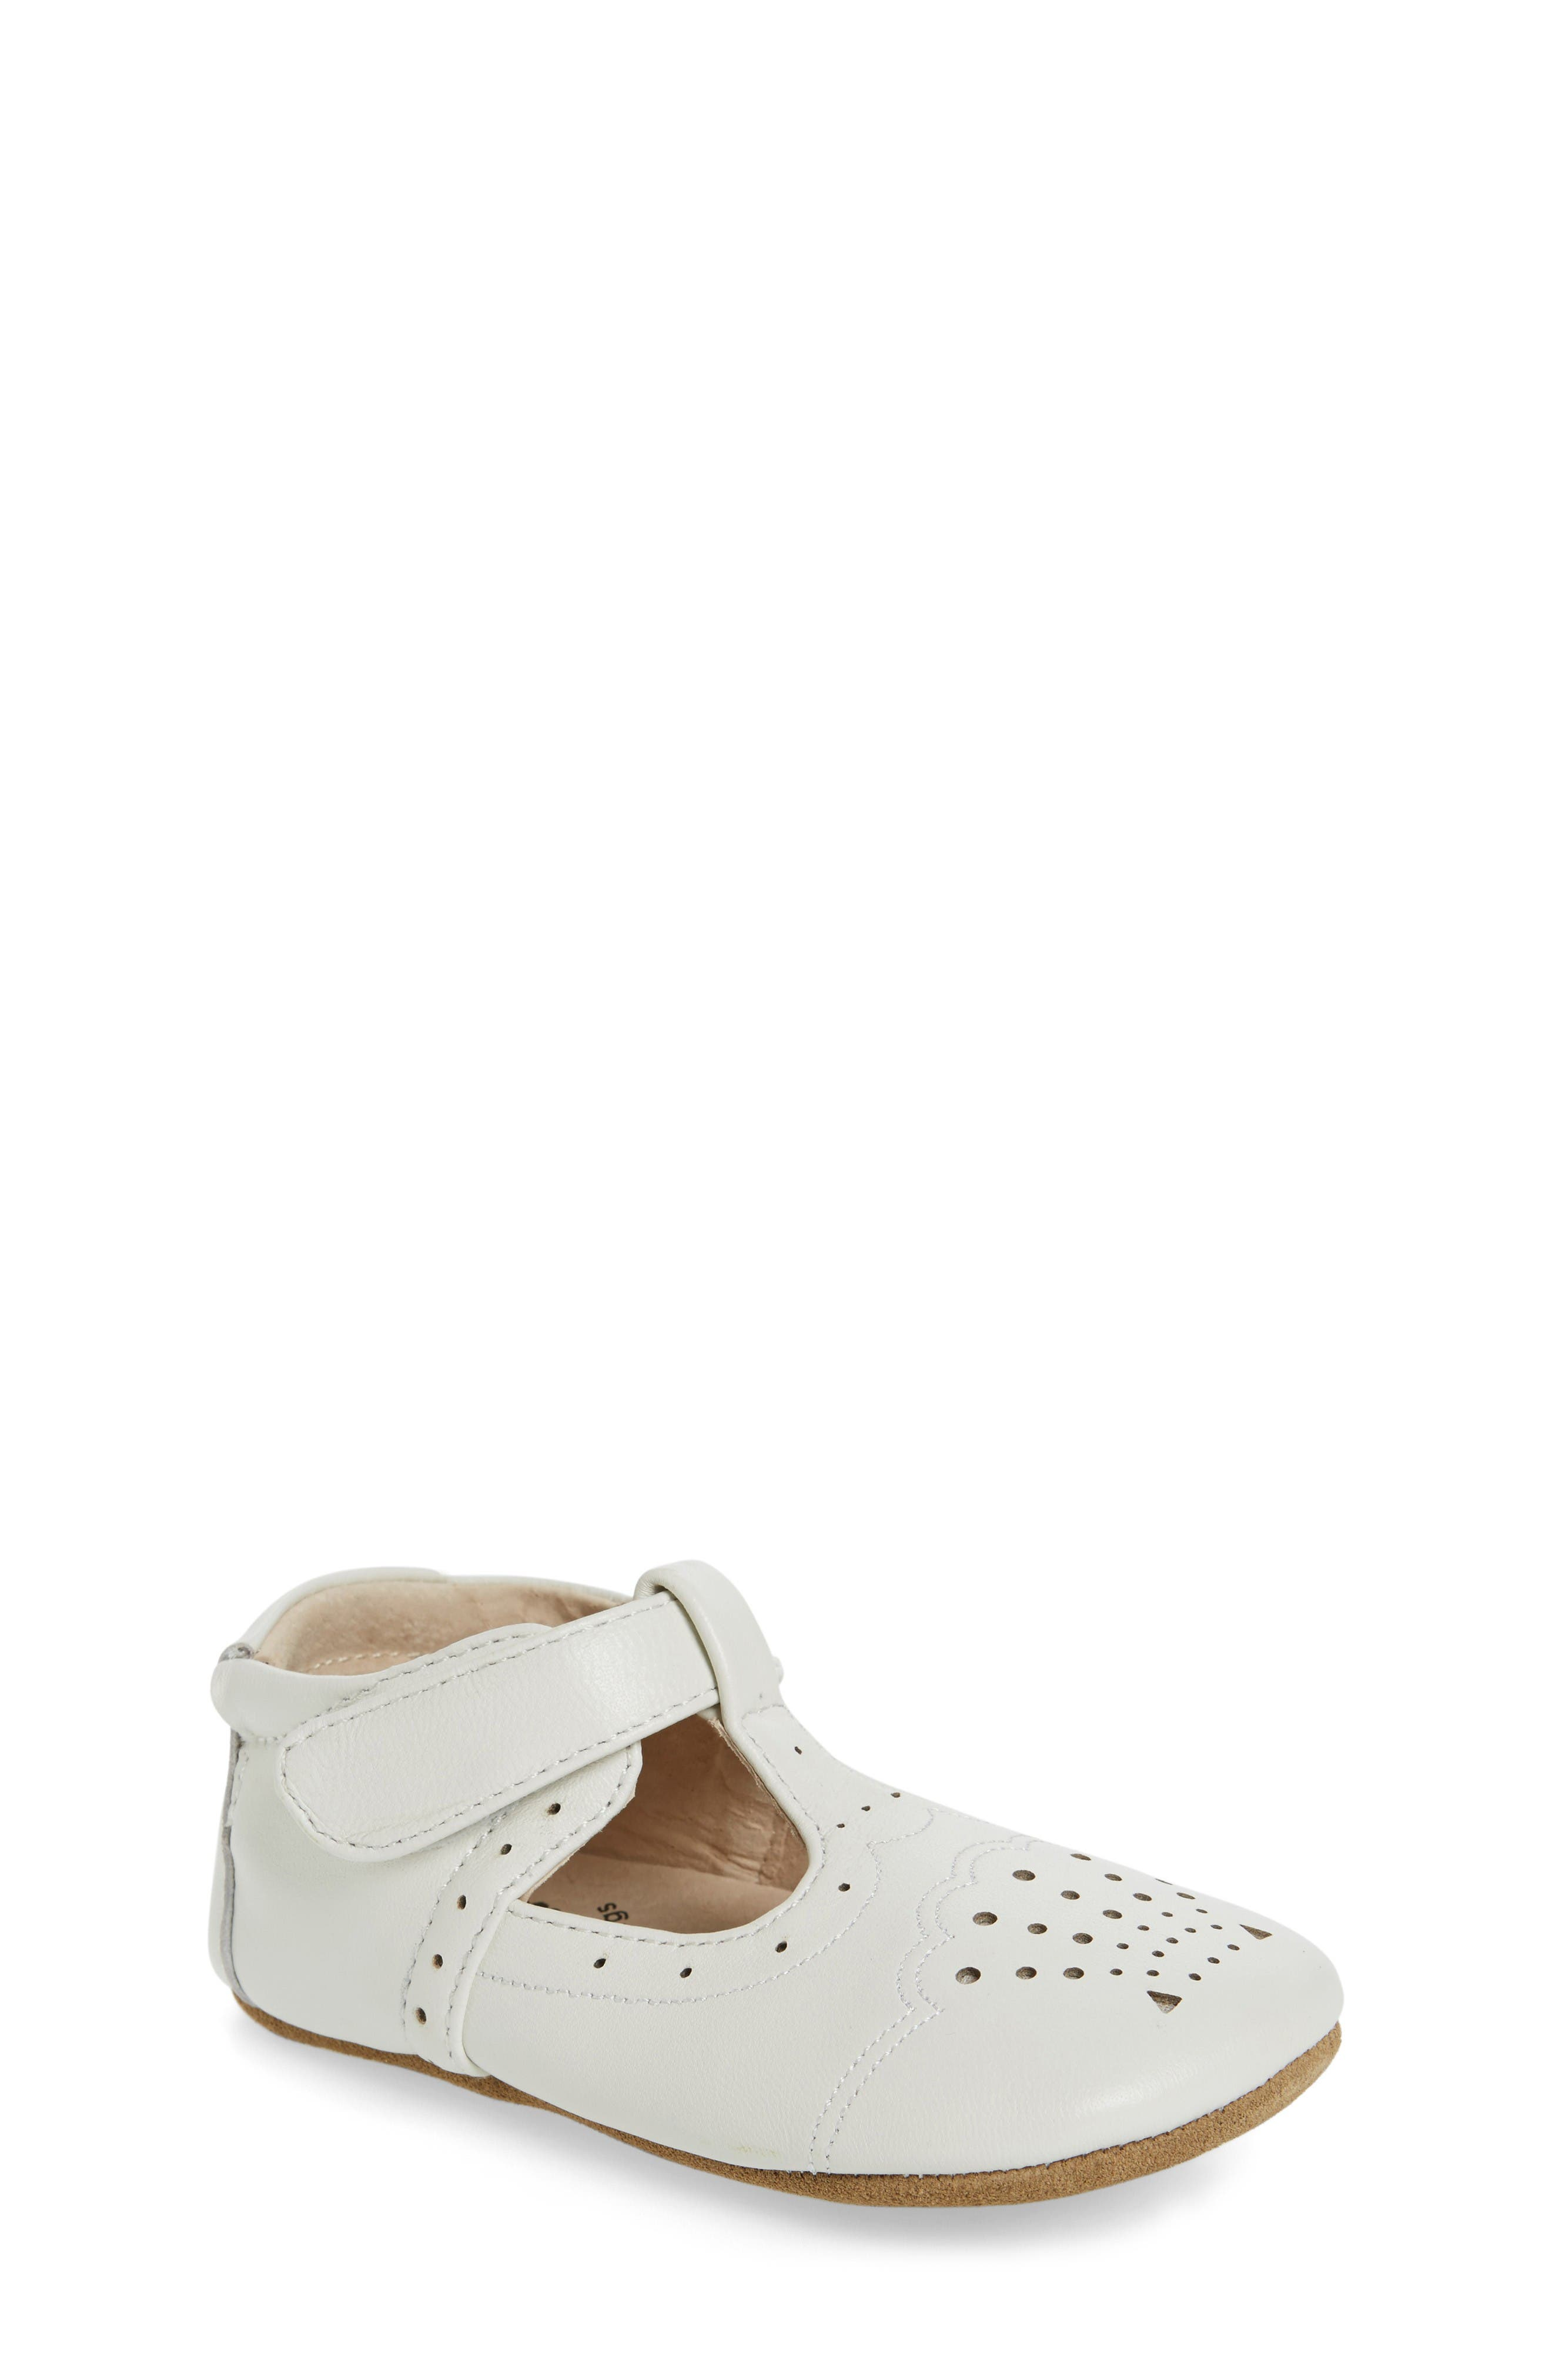 'Cora' Mary Jane,                         Main,                         color, Milk Leather